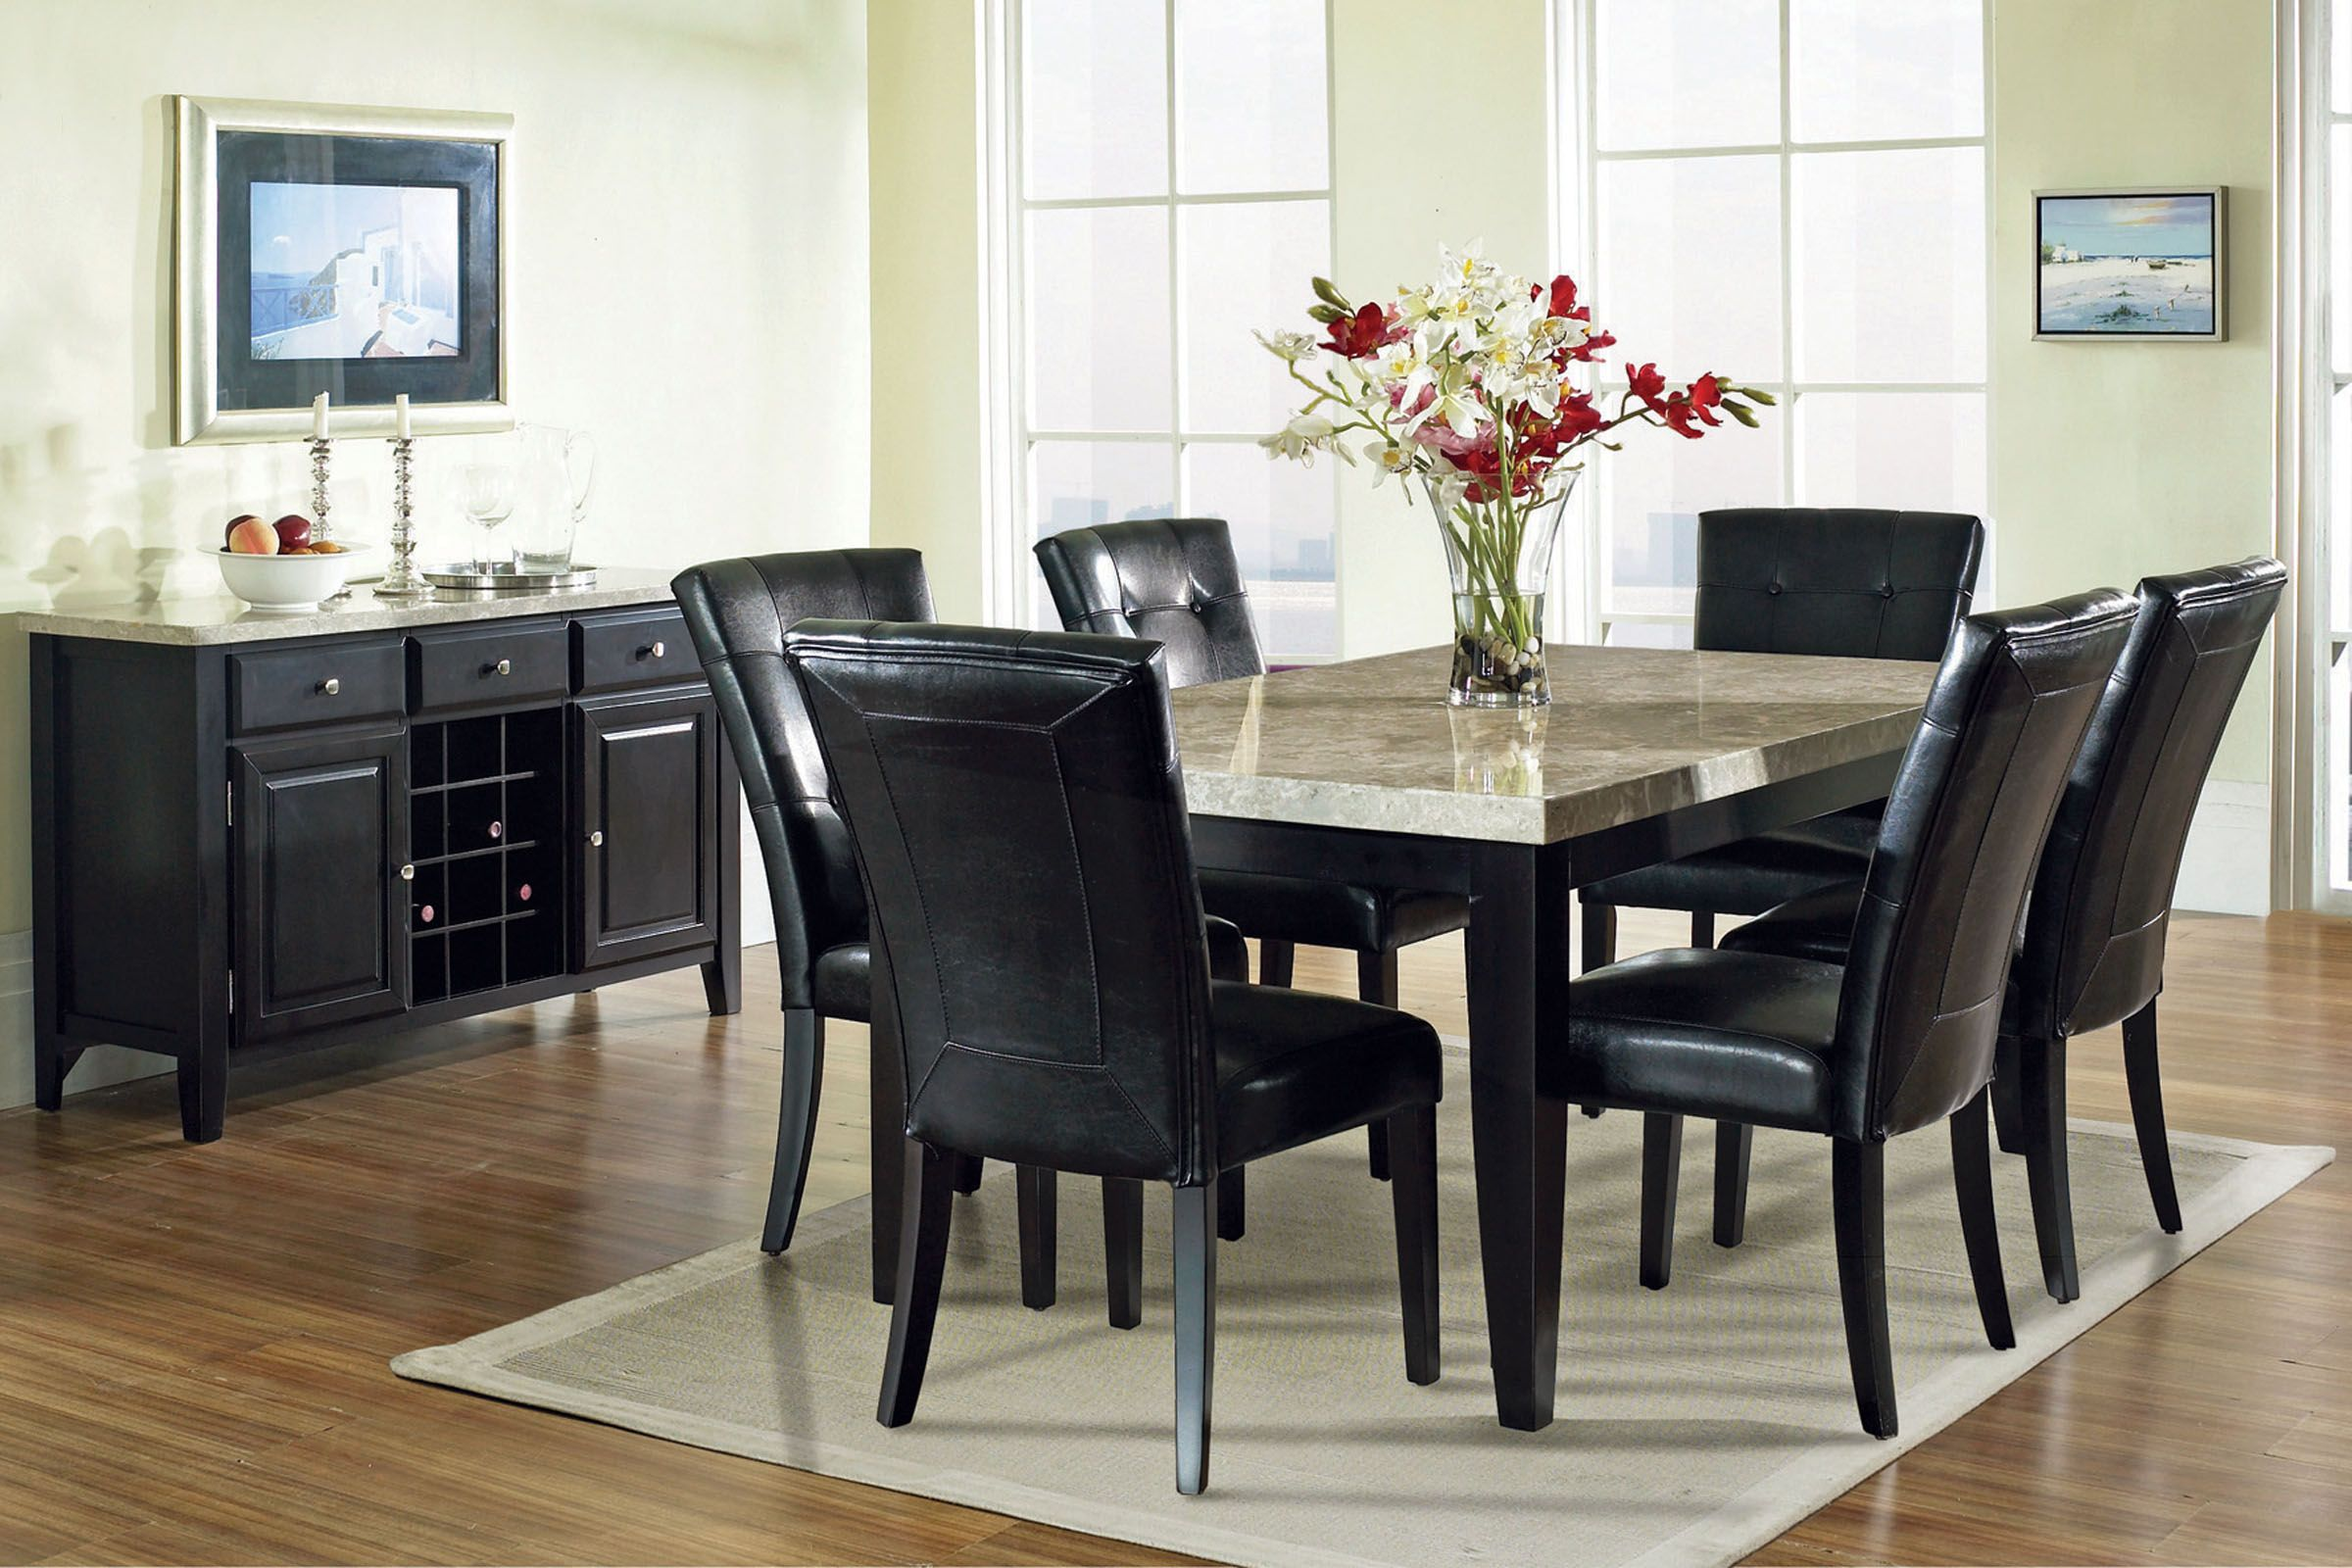 Cucina Letters Kitchen Decor, Monarch Dining Table 6 Chairs At Gardner White